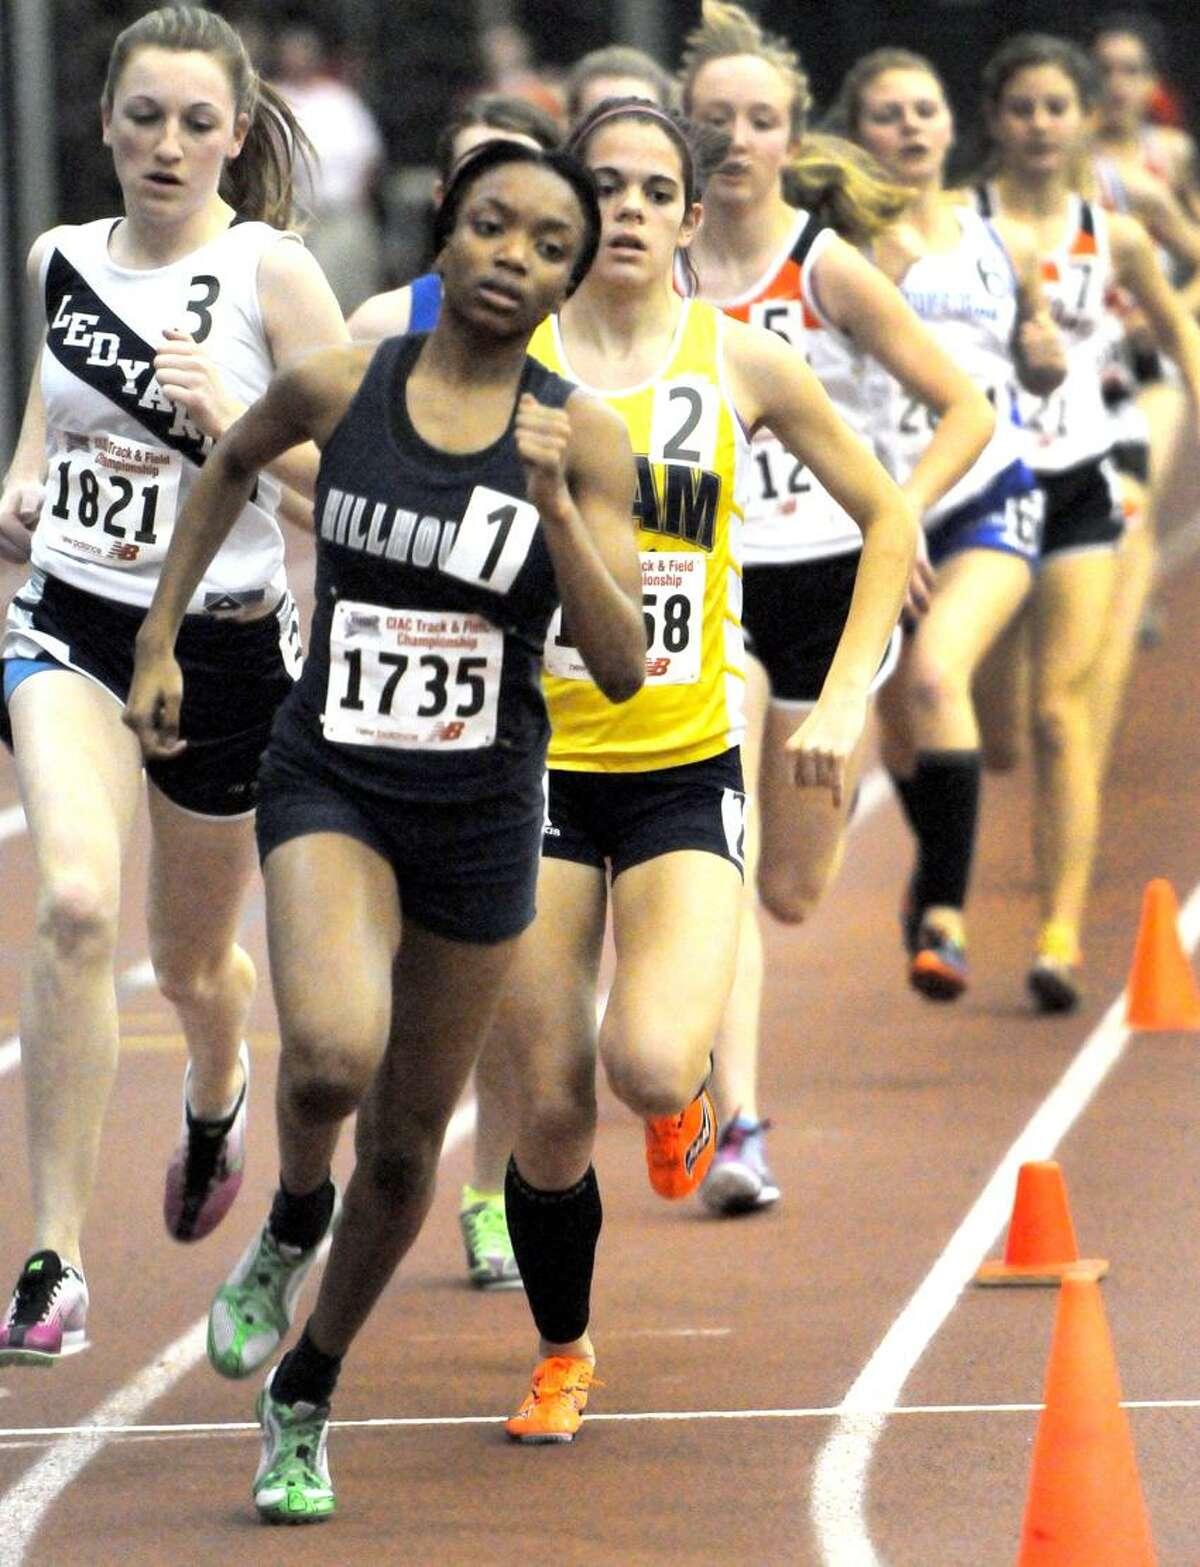 Kellie Davis of Hillhouse H.S. runs to the championship in the 1000 meter during the Class M Indoor Track State Championships Thursday, February 7, 2013 at the Floyd Little Athletic Center in New Haven. Photo by Peter Hvizdak / New Haven Register